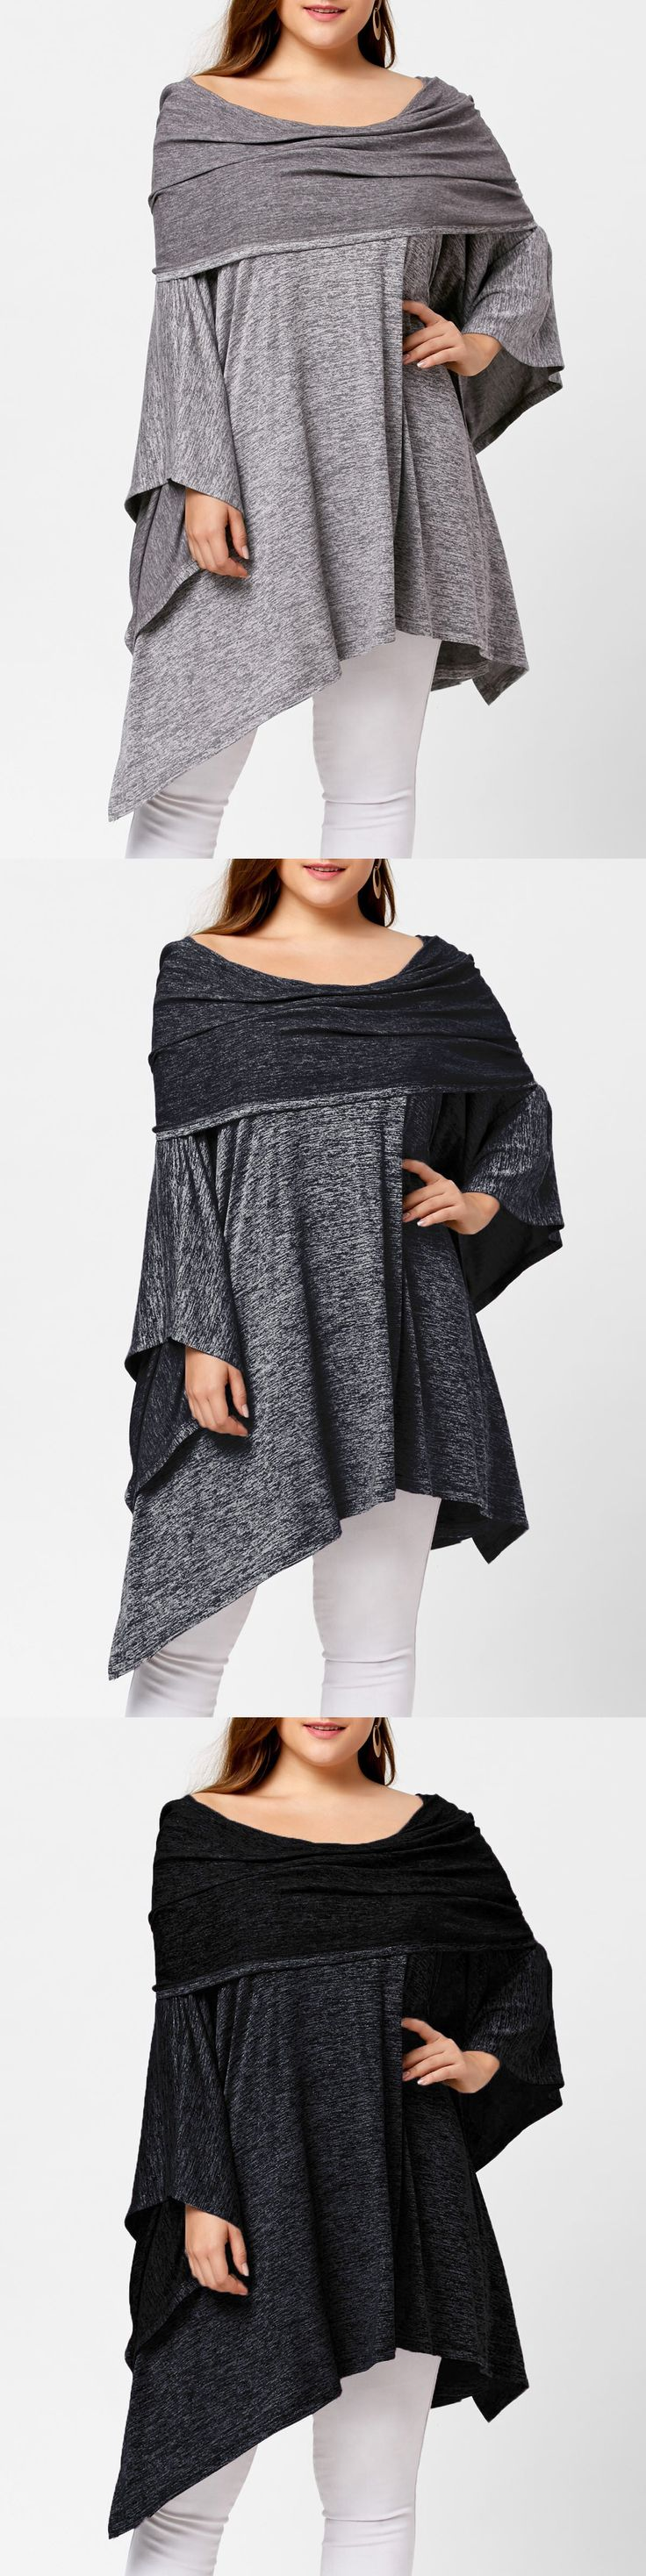 $15.44,Asymmetric Plus Size Off Shoulder Tunic Top - Deep Gray,gray,black,deep blue,light blue,red | Rosewholesale, rosewholesale plus size,rosewholesale dress,rosewholesale dress plus size,rosewholesale tops,plus size,tops | #rosewholesale #plussize #tops